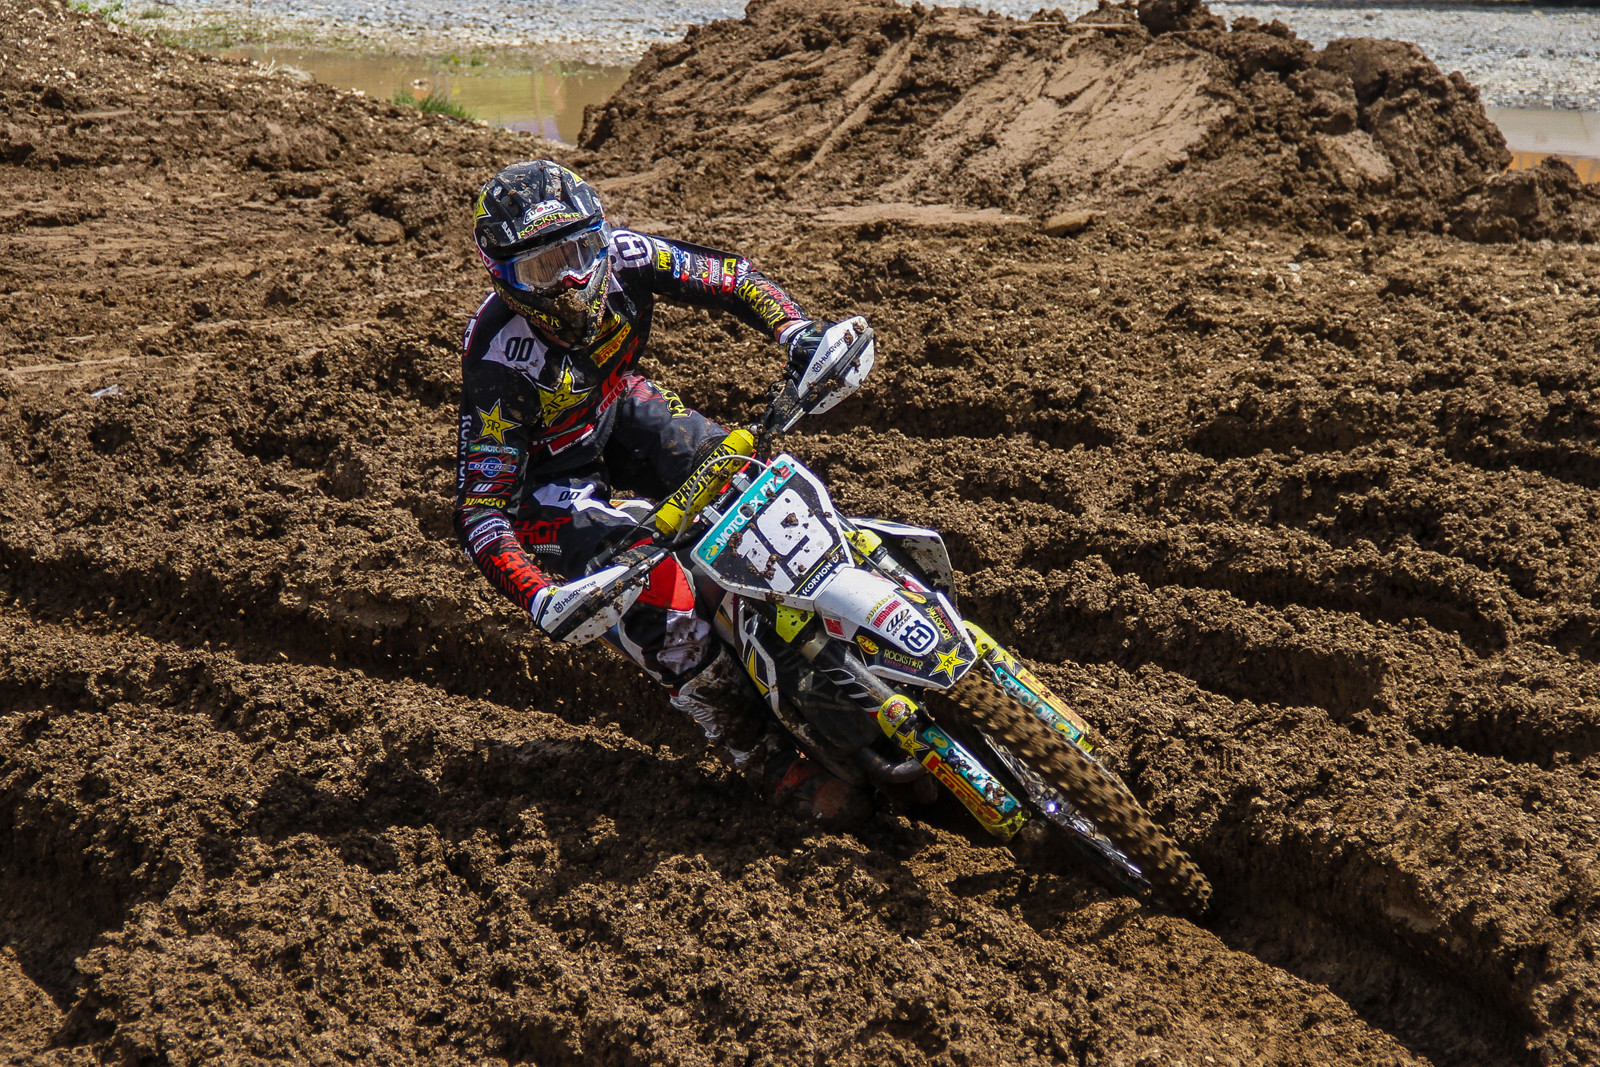 Thomas Covington is coming home, as he announced over the weekend he will return to the US in 2019 with the Rockstar Husqvarna team.